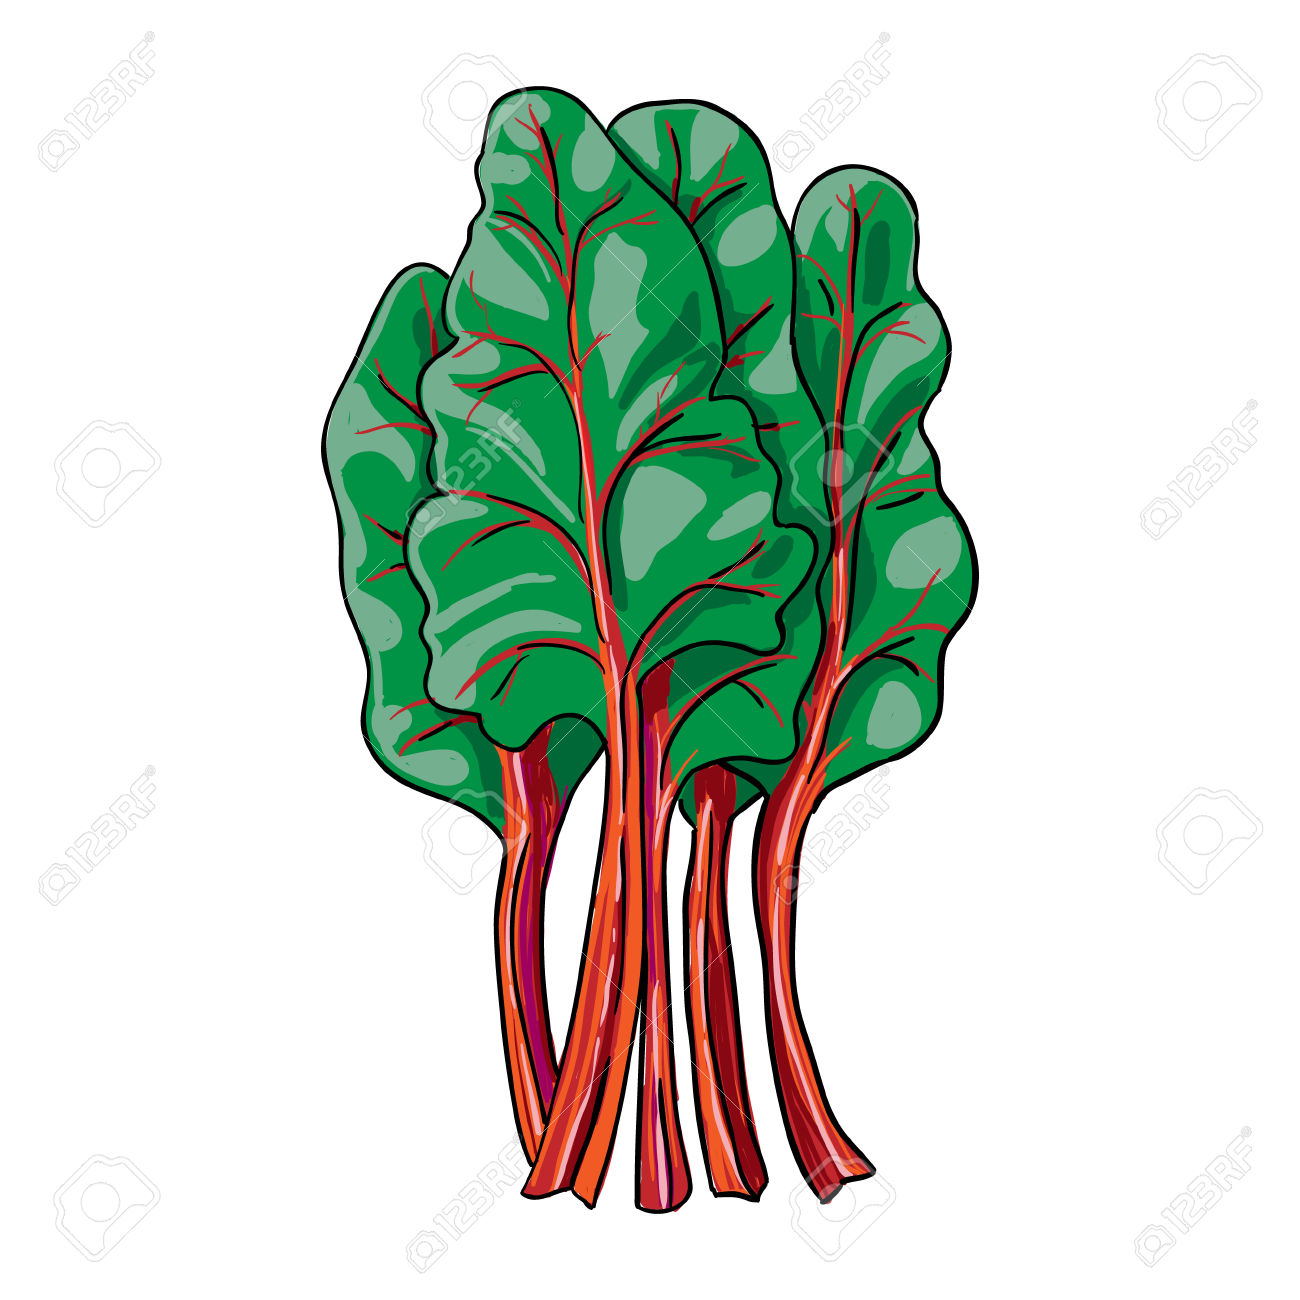 76 Rhubarb Stock Vector Illustration And Royalty Free Rhubarb Clipart.